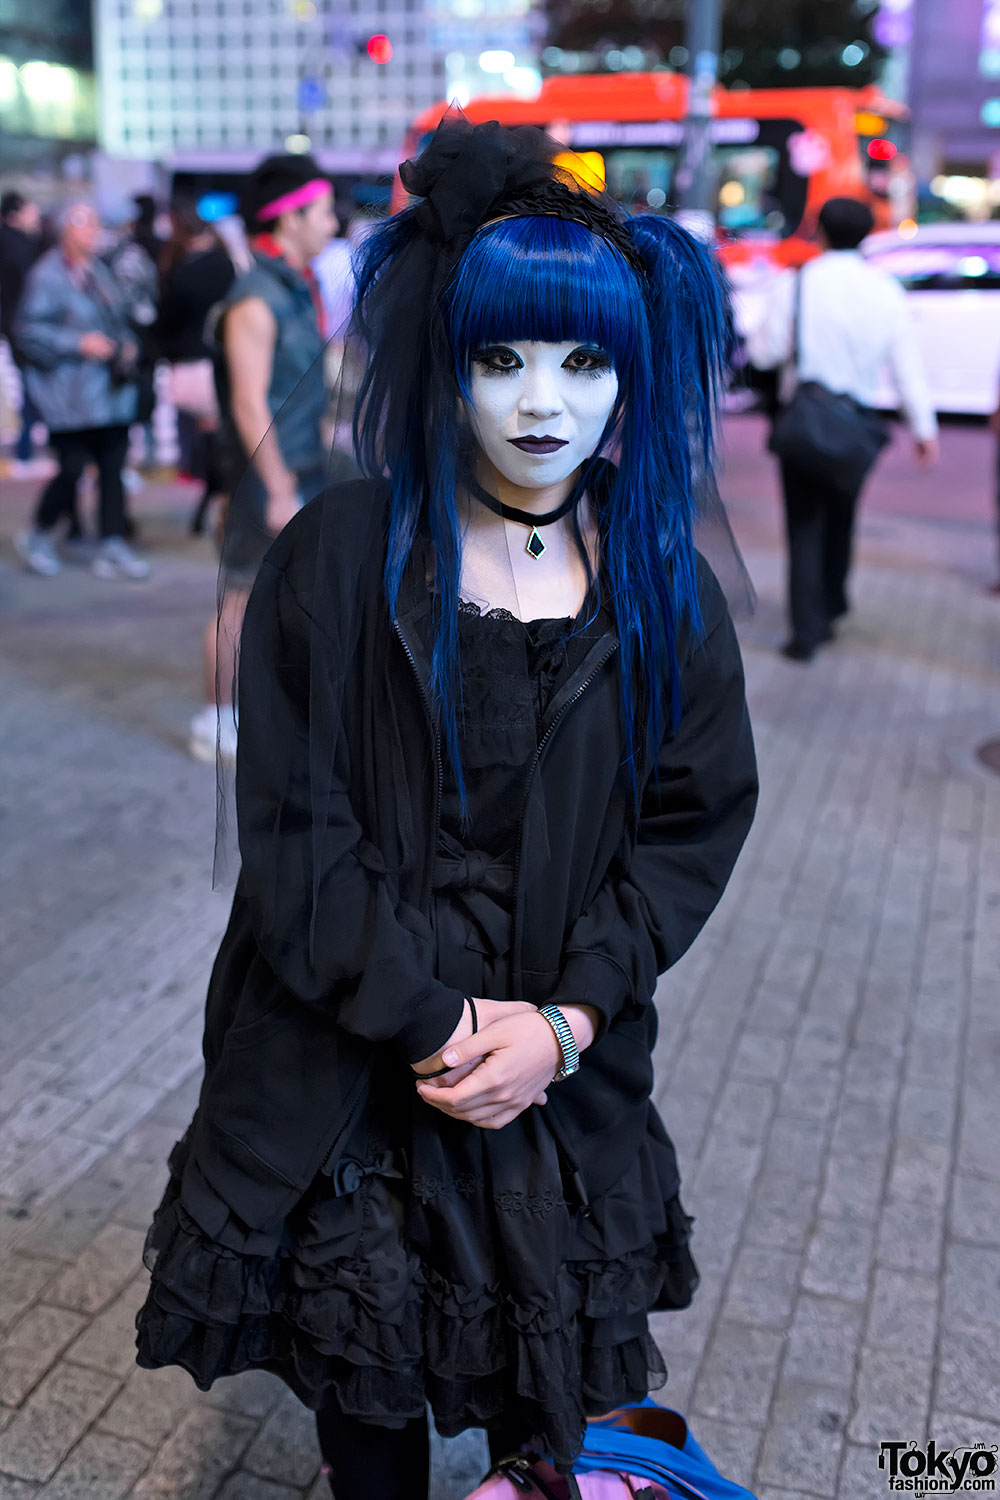 Japan Halloween Costumes - Pictures & Video From Tokyo!